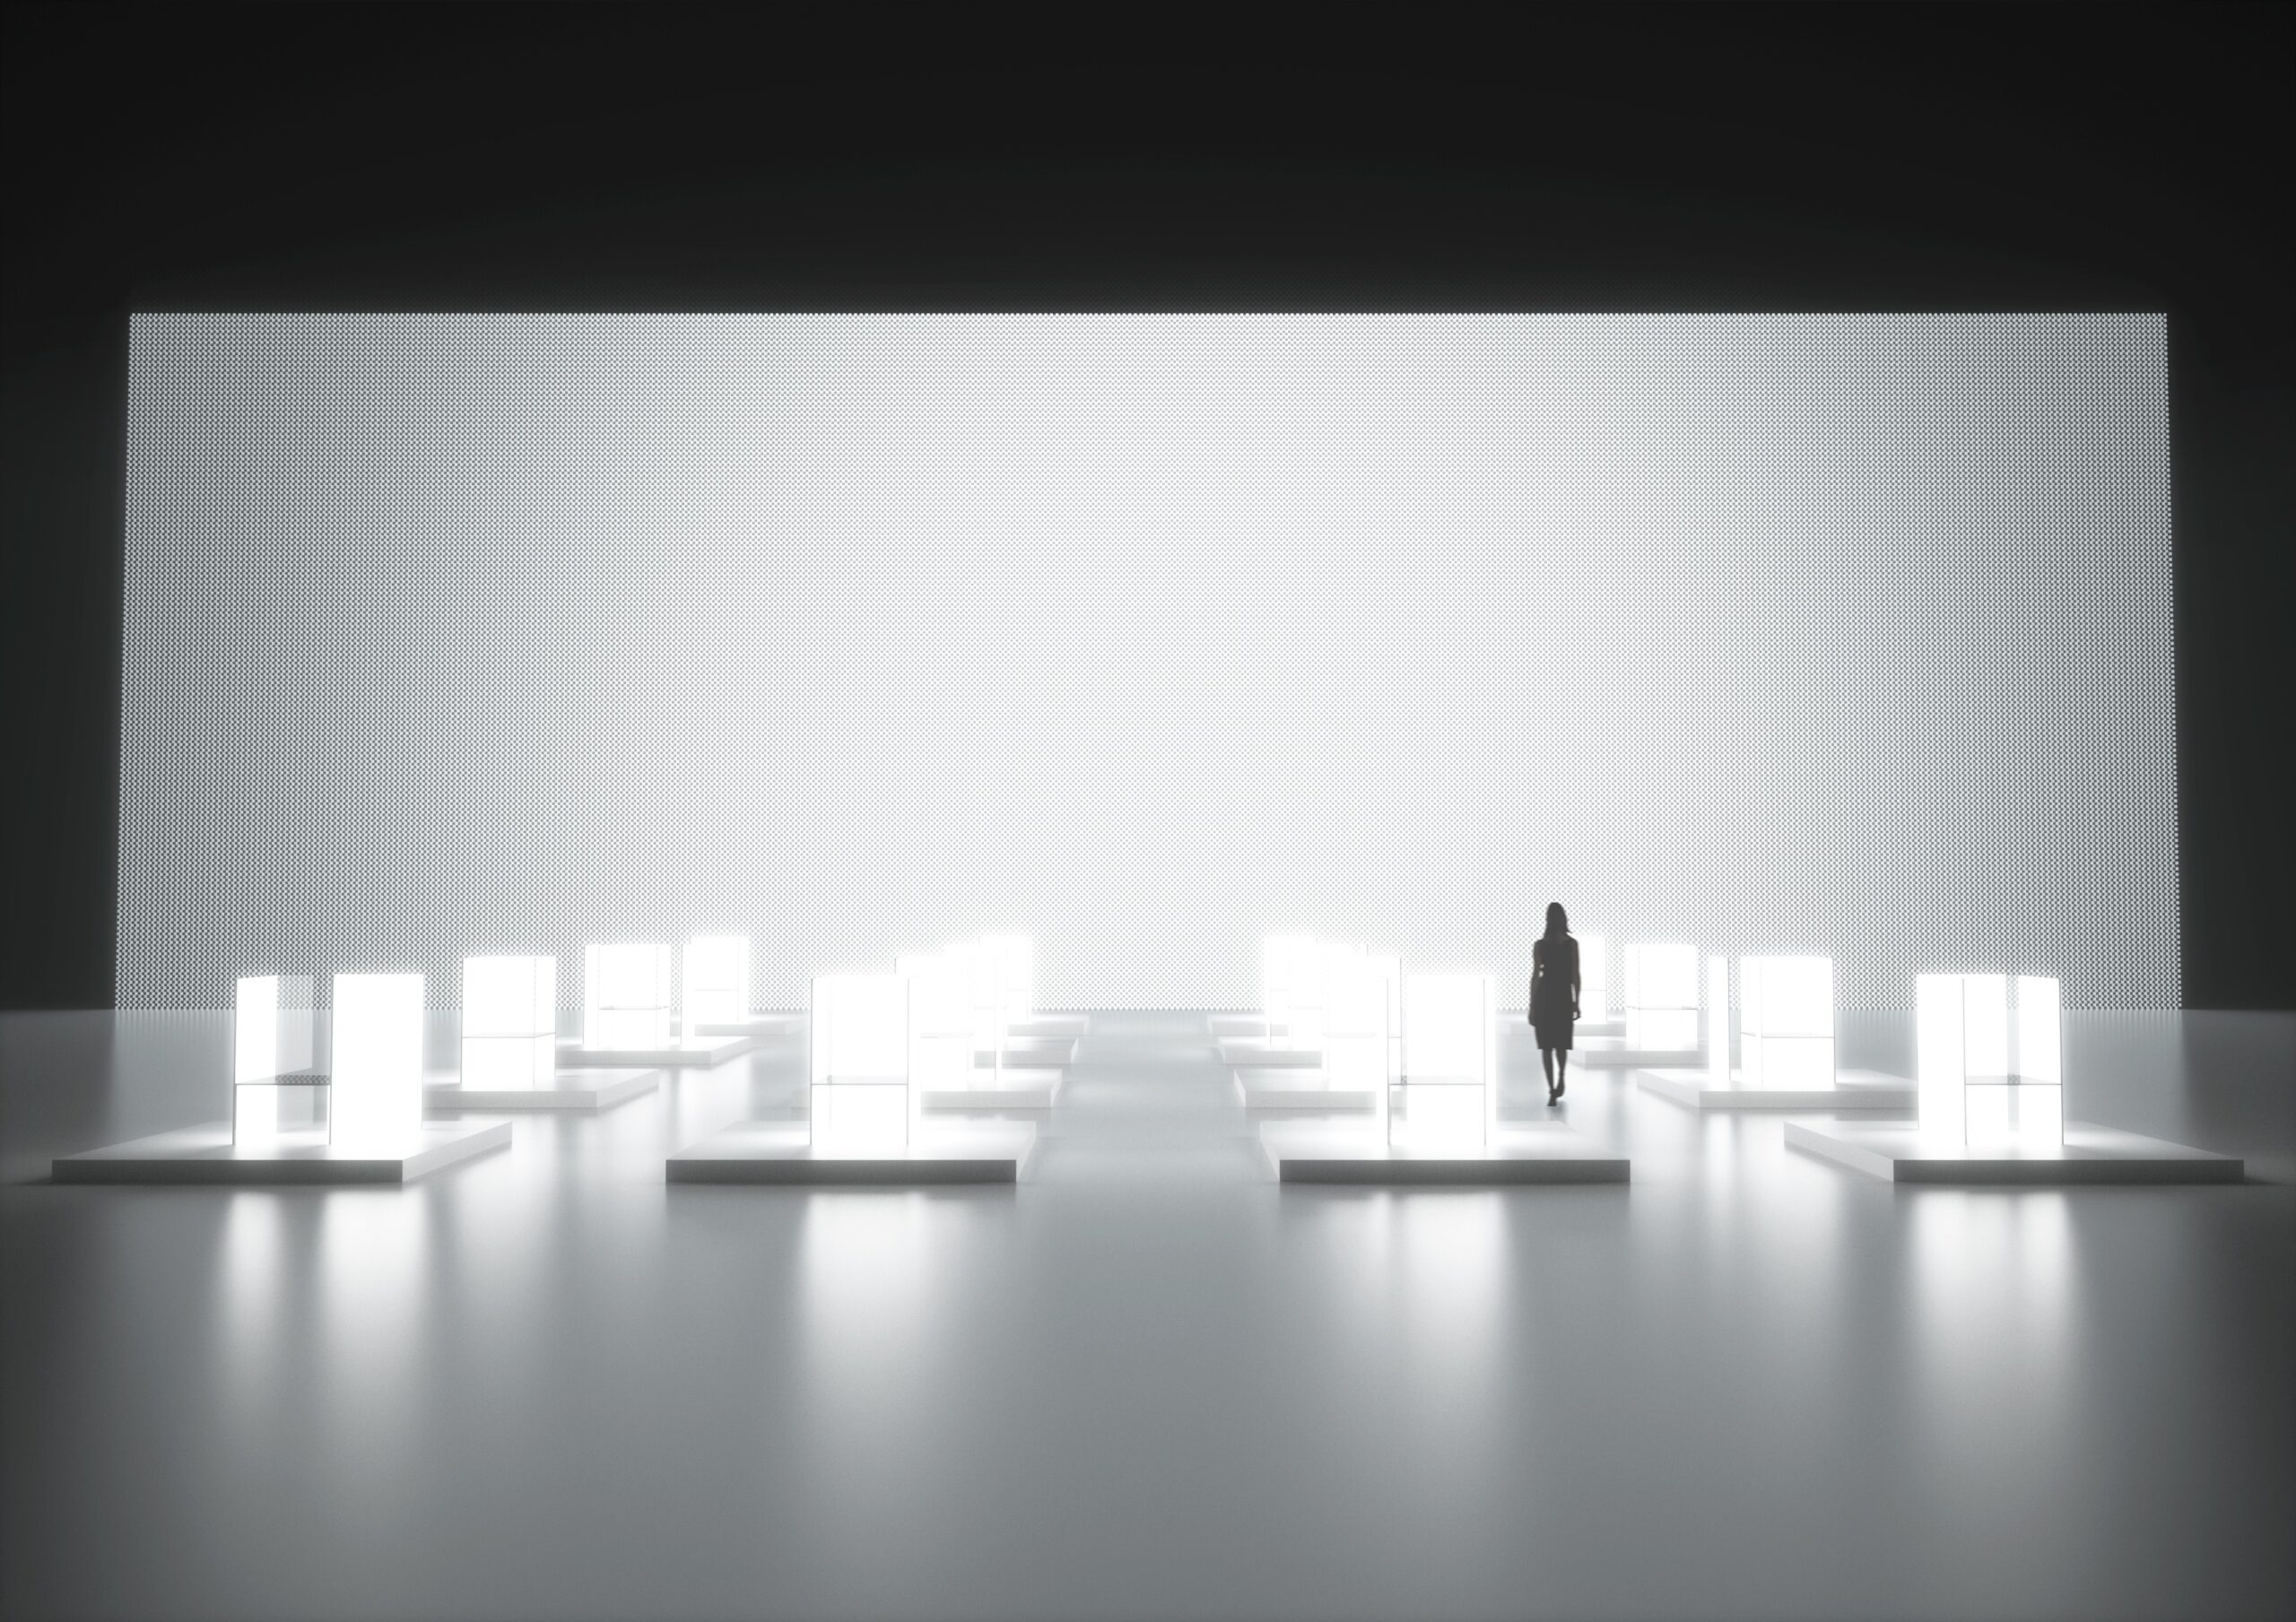 LG's world's largest design exhibition, S.F_Senses of the Future, created by Superstudio Piu for 2017 Milano Design Week.